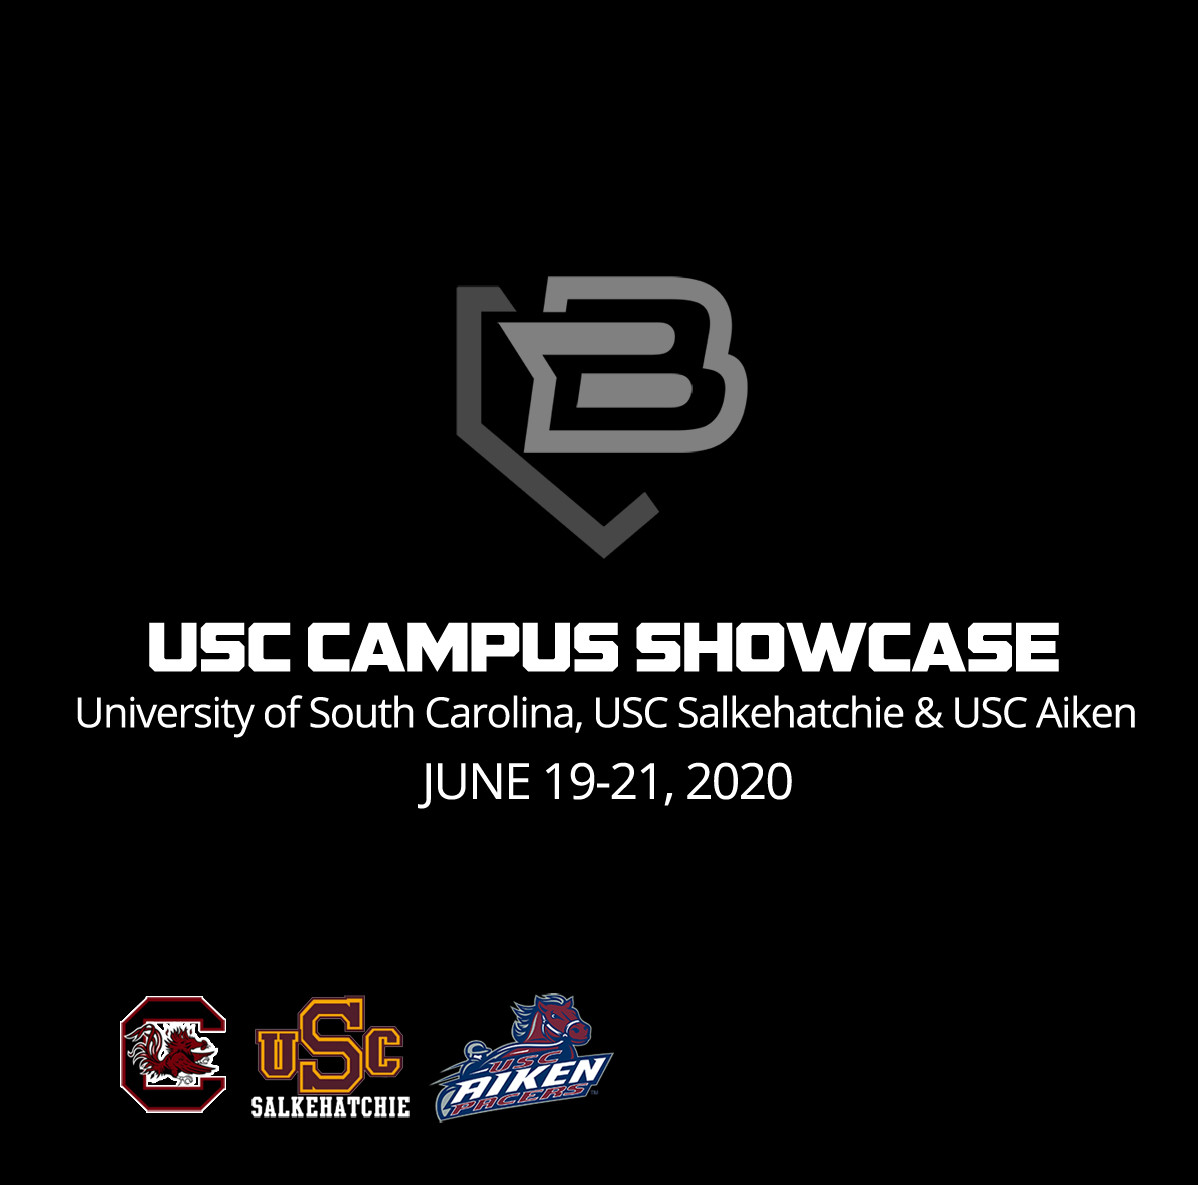 USC Campus Showcase